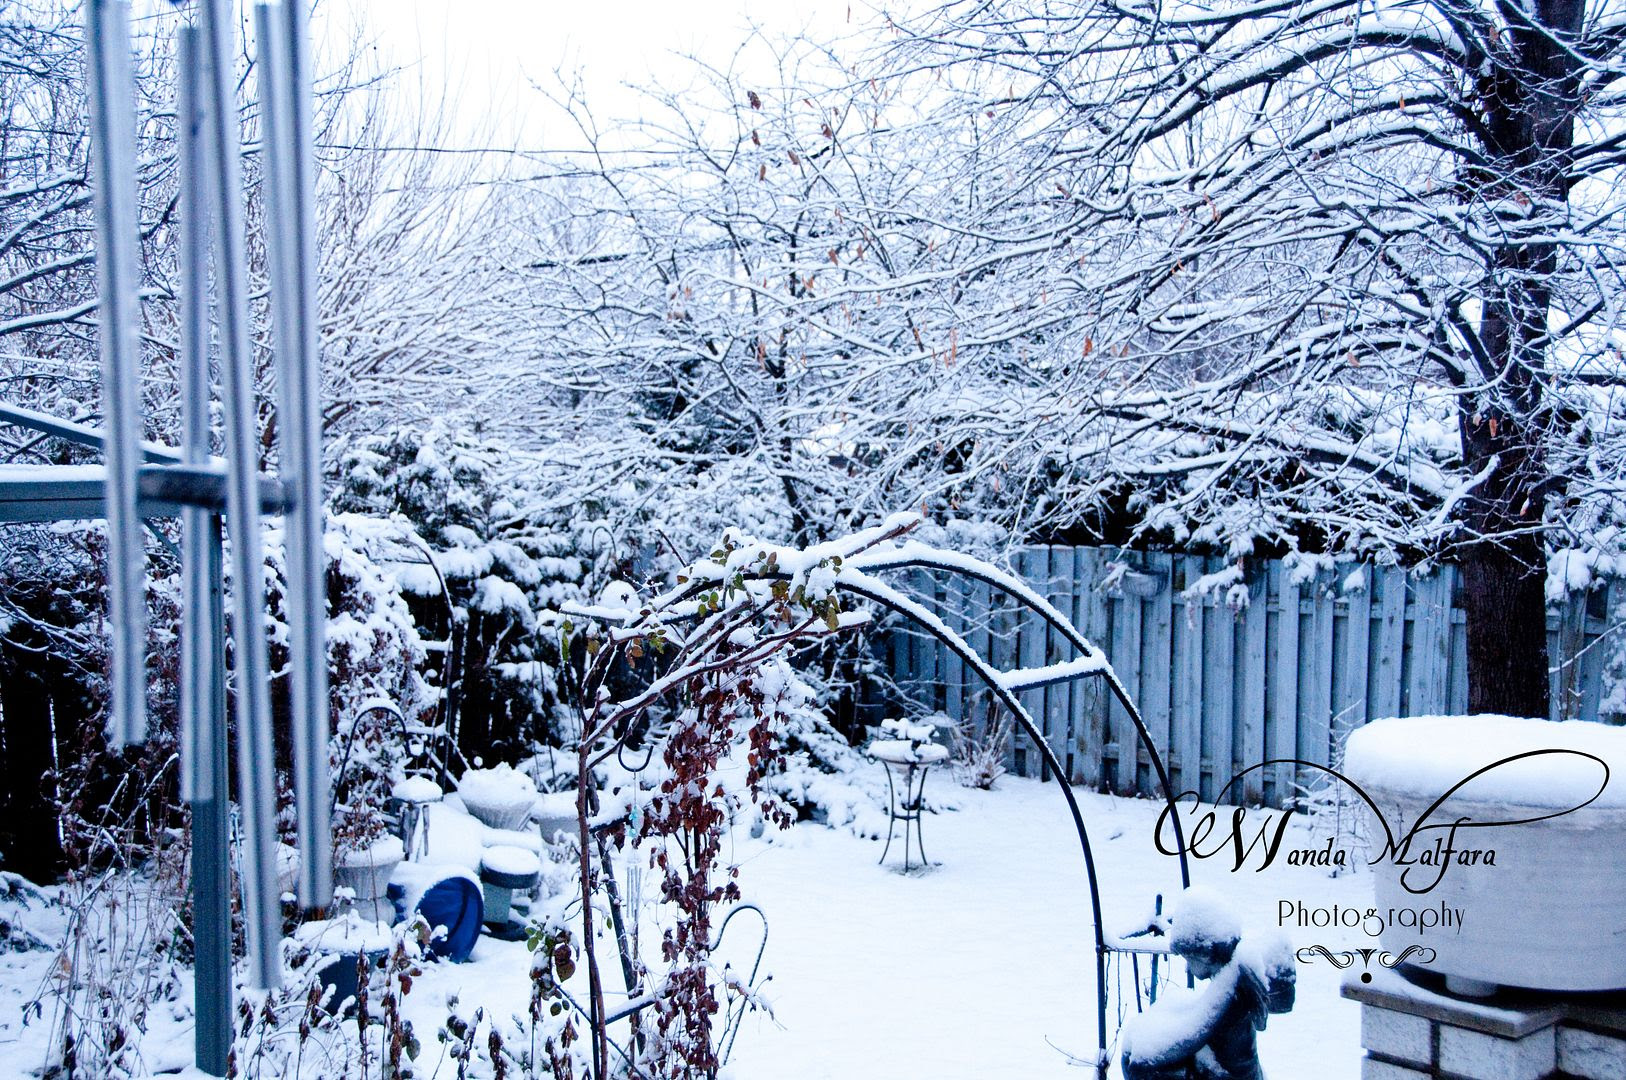 Wed Jan 18, 2011, My frosty backyard